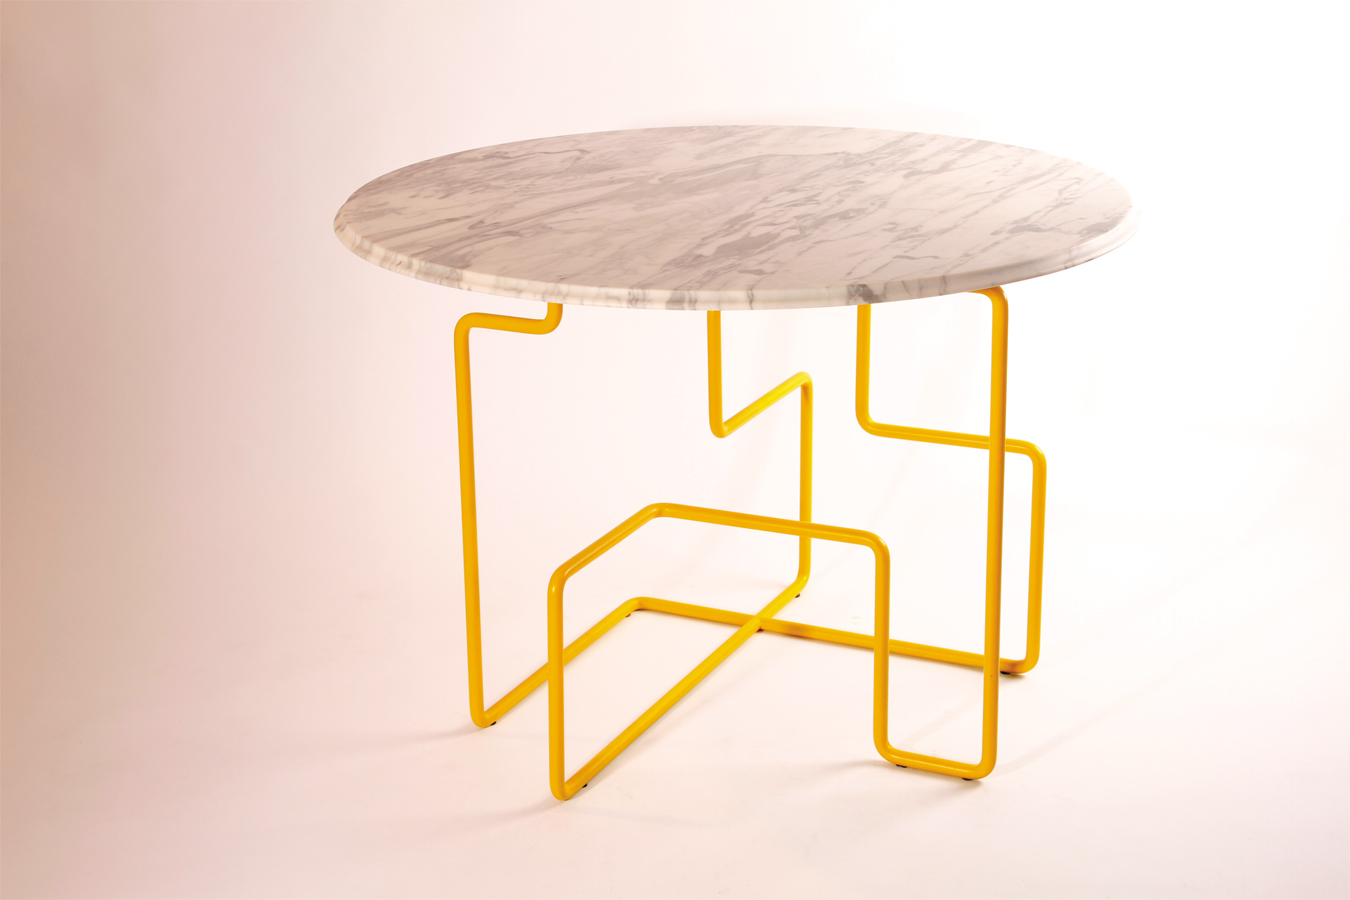 KST Dining Table by Livius Härer and Ada Ihmels